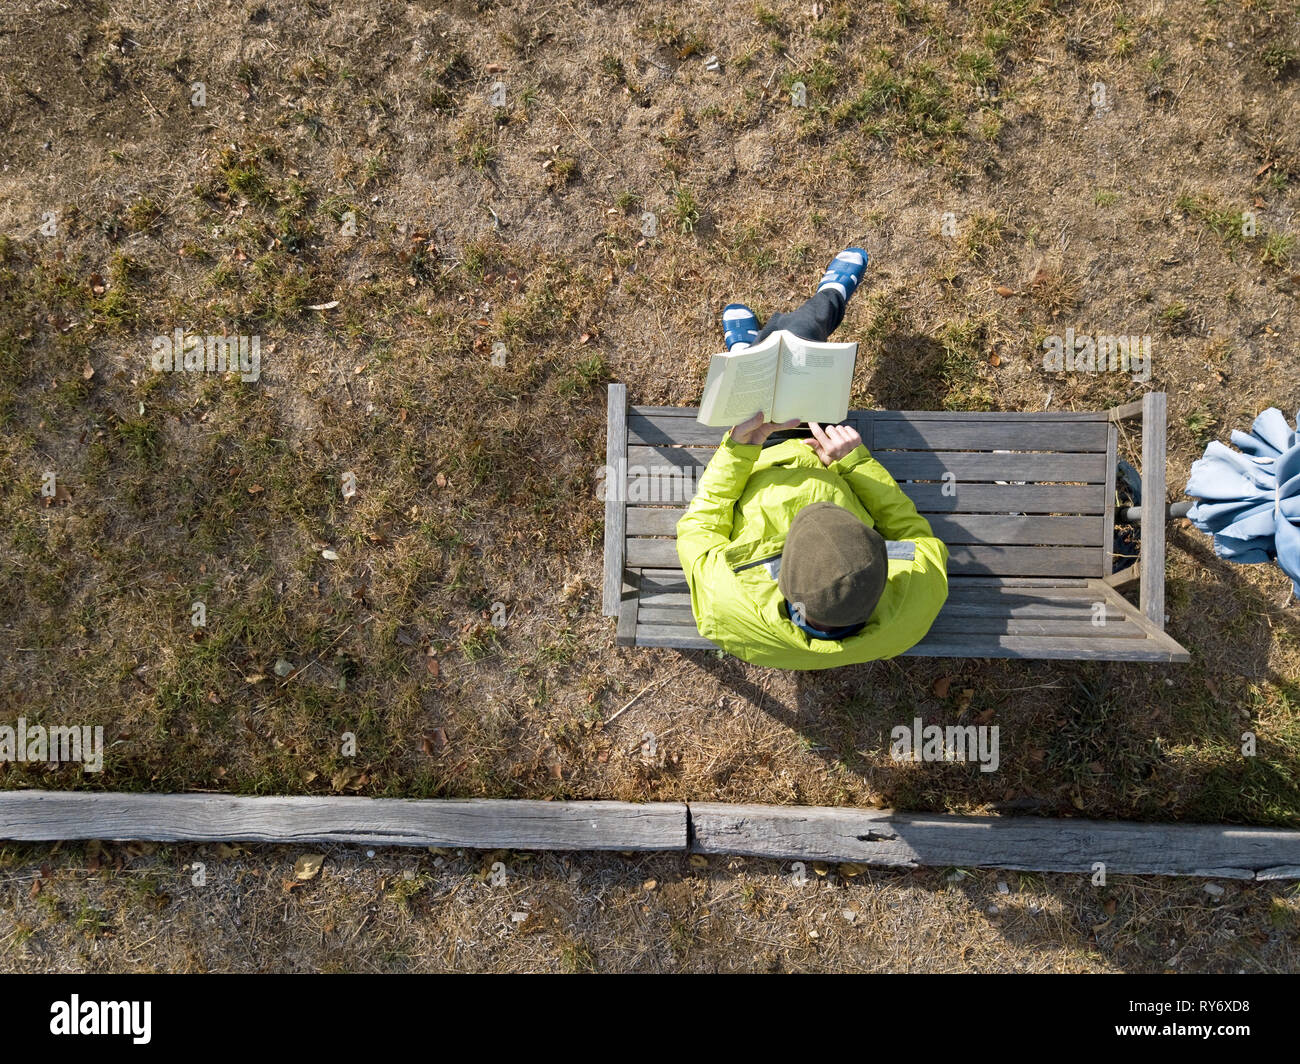 Aerial guy reading book and sitting outdoors with bright jacket and slippers. Aerial photography captured in Victoria, Australia. - Stock Image